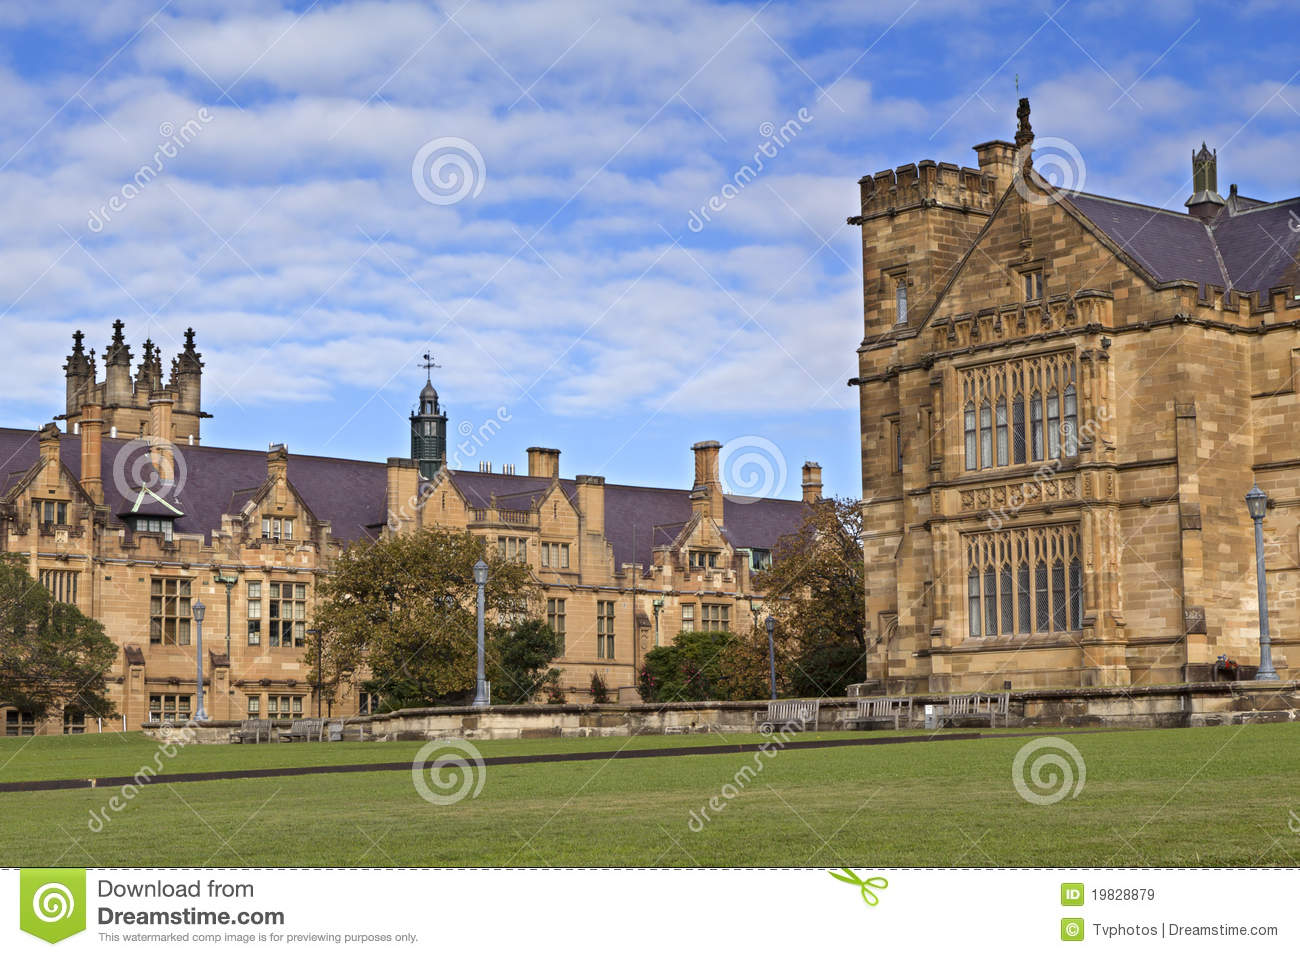 Engineering Management college of fine arts sydney university